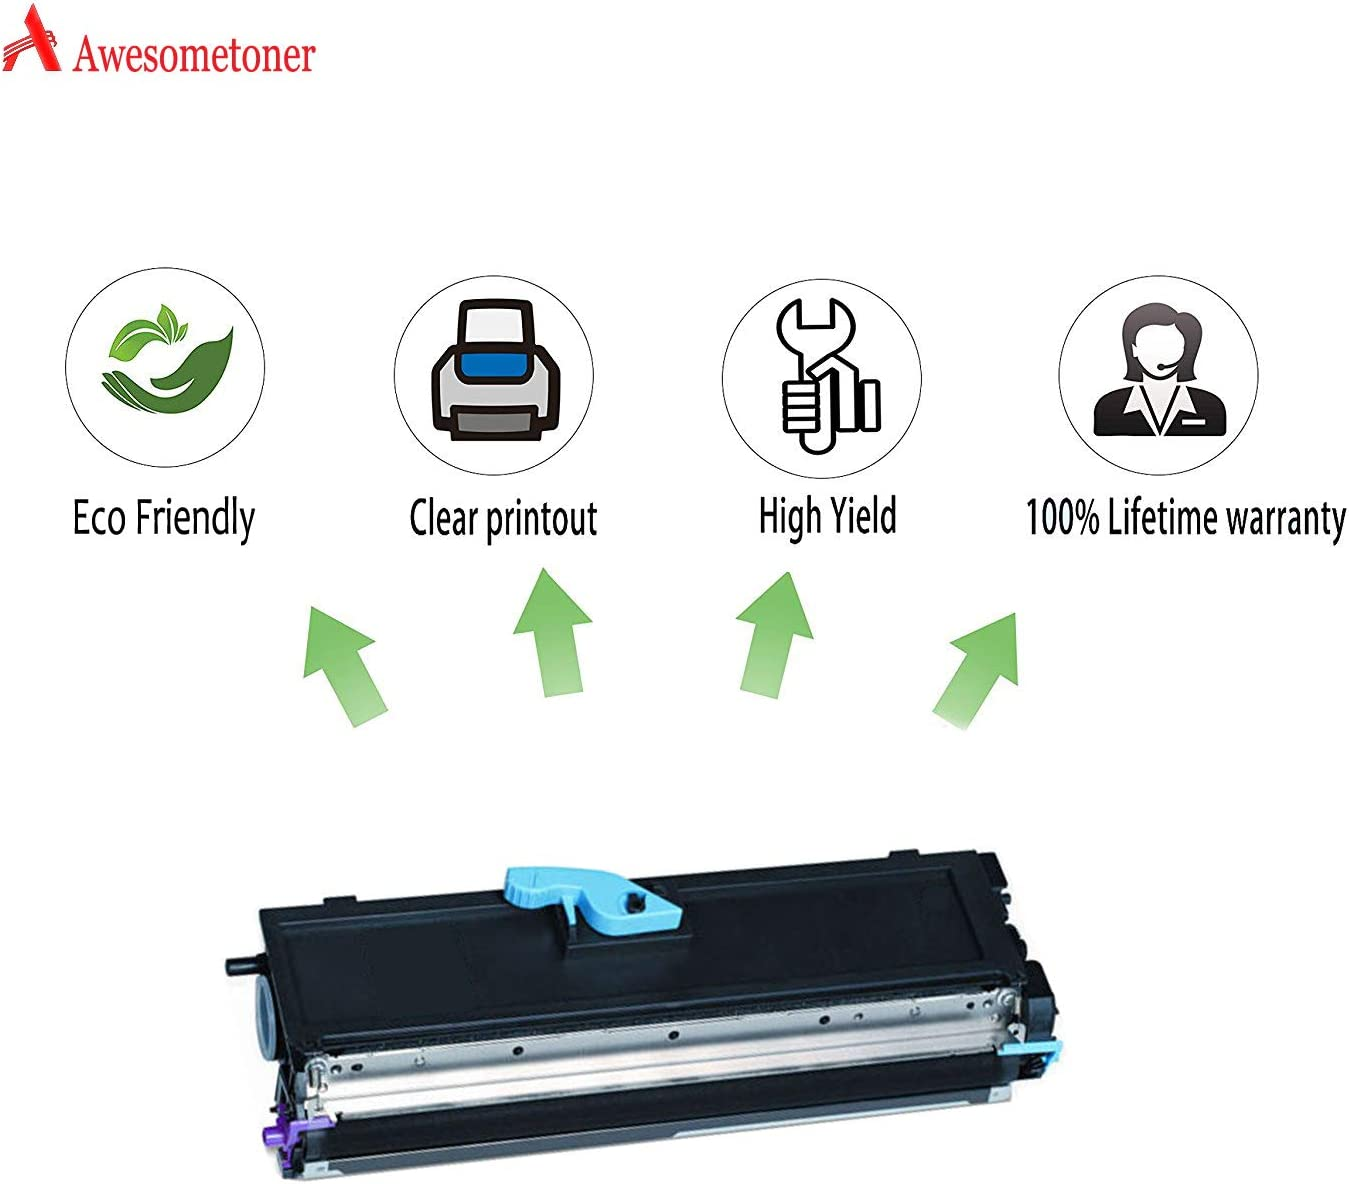 1400W Black, 5-Pack Awesometoner Remanufactured Toner Cartridge Replacement for Konica Minolta 9J04203 use with PagePro 1400